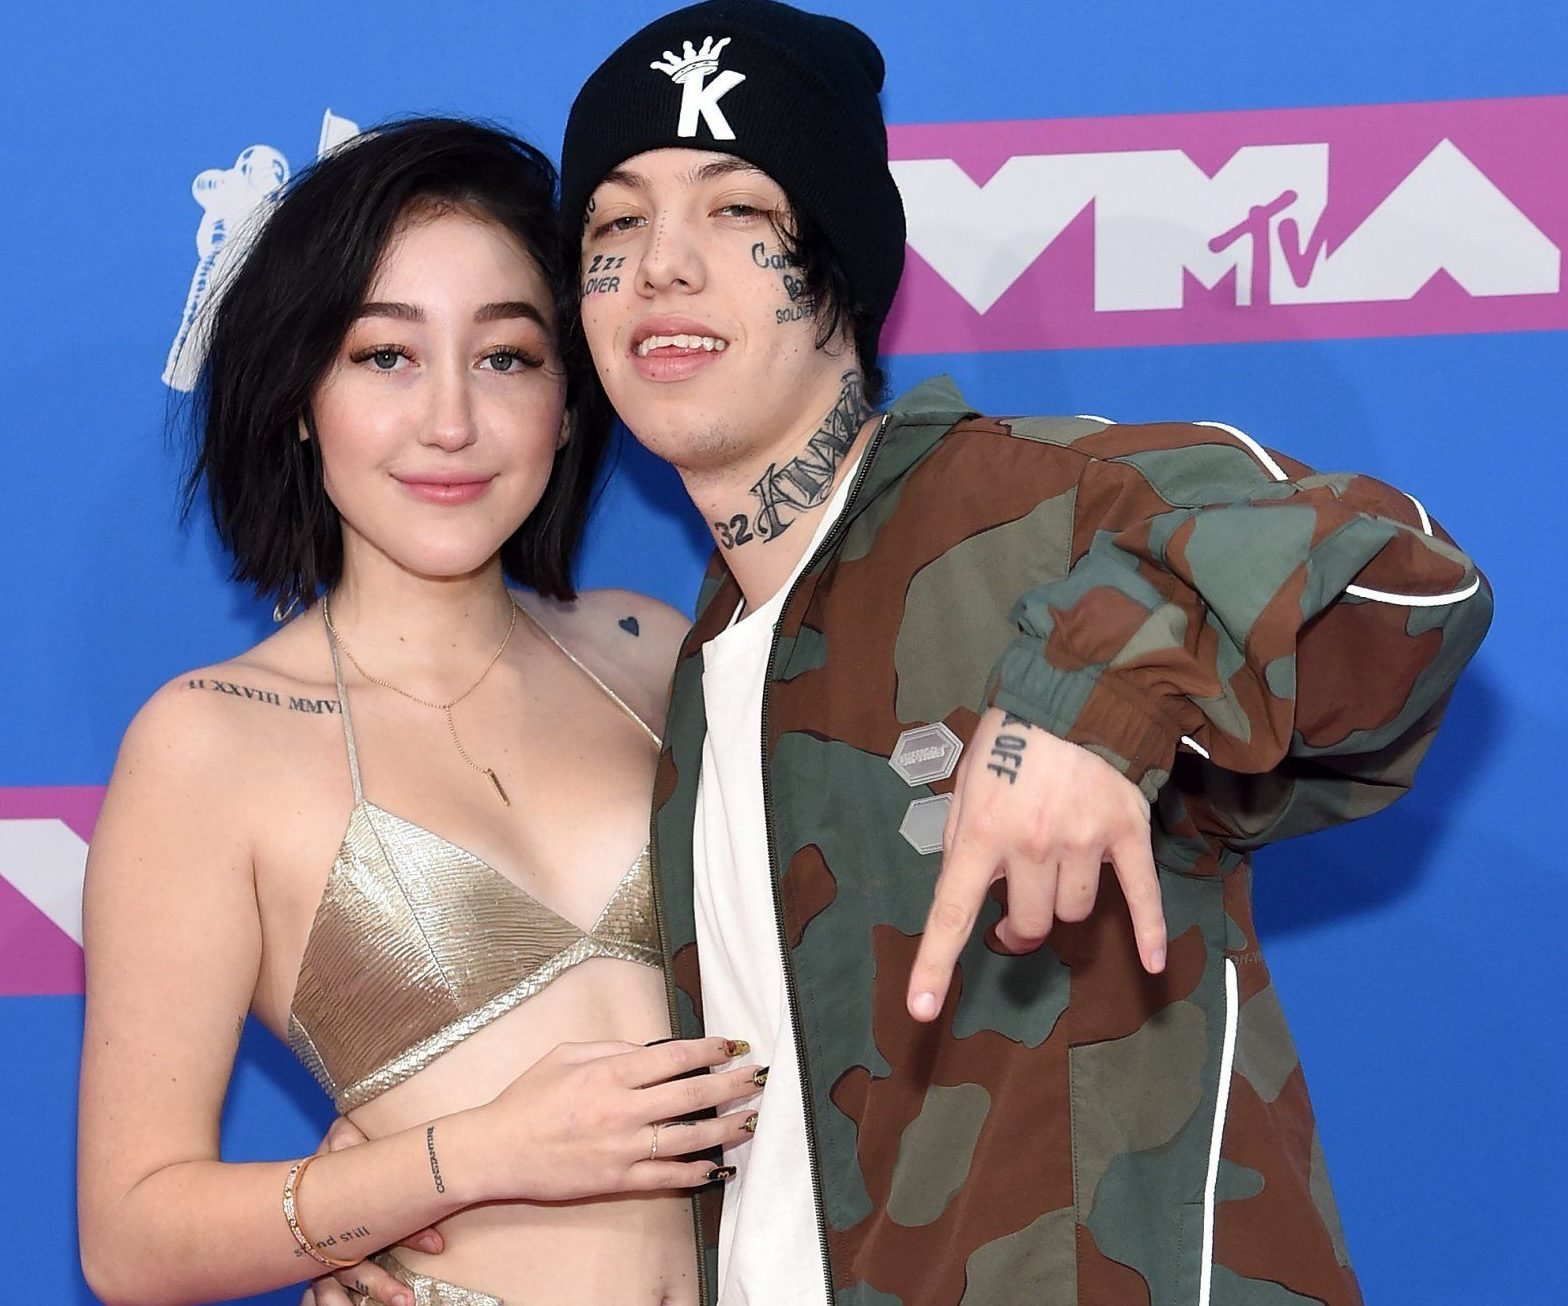 NEW YORK, NY - AUGUST 20: Noah Cyrus and Lil Xan attend the 2018 MTV Video Music Awards at Radio City Music Hall on August 20, 2018 in New York City. (Photo by Jamie McCarthy/Getty Images)